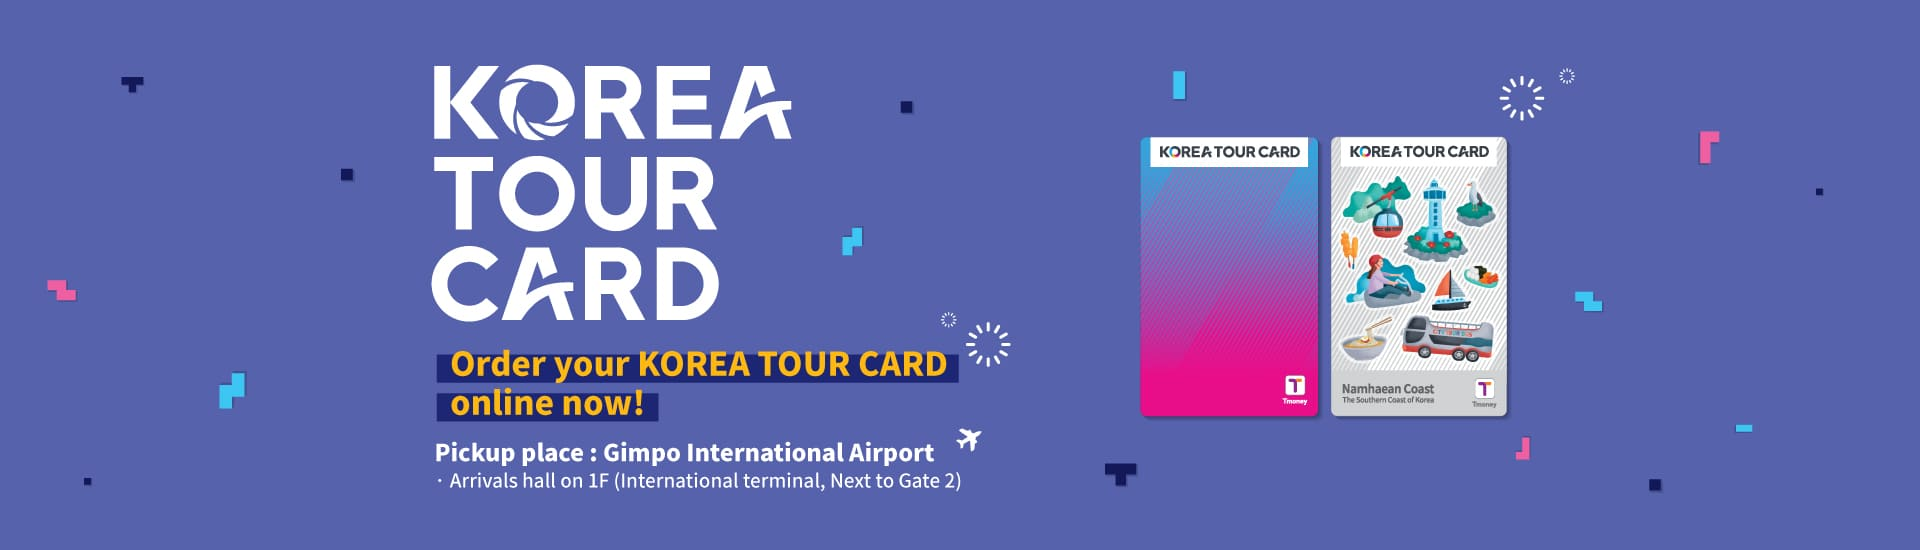 Korea_Tour_Card_Main_Eng_ver_1920*550